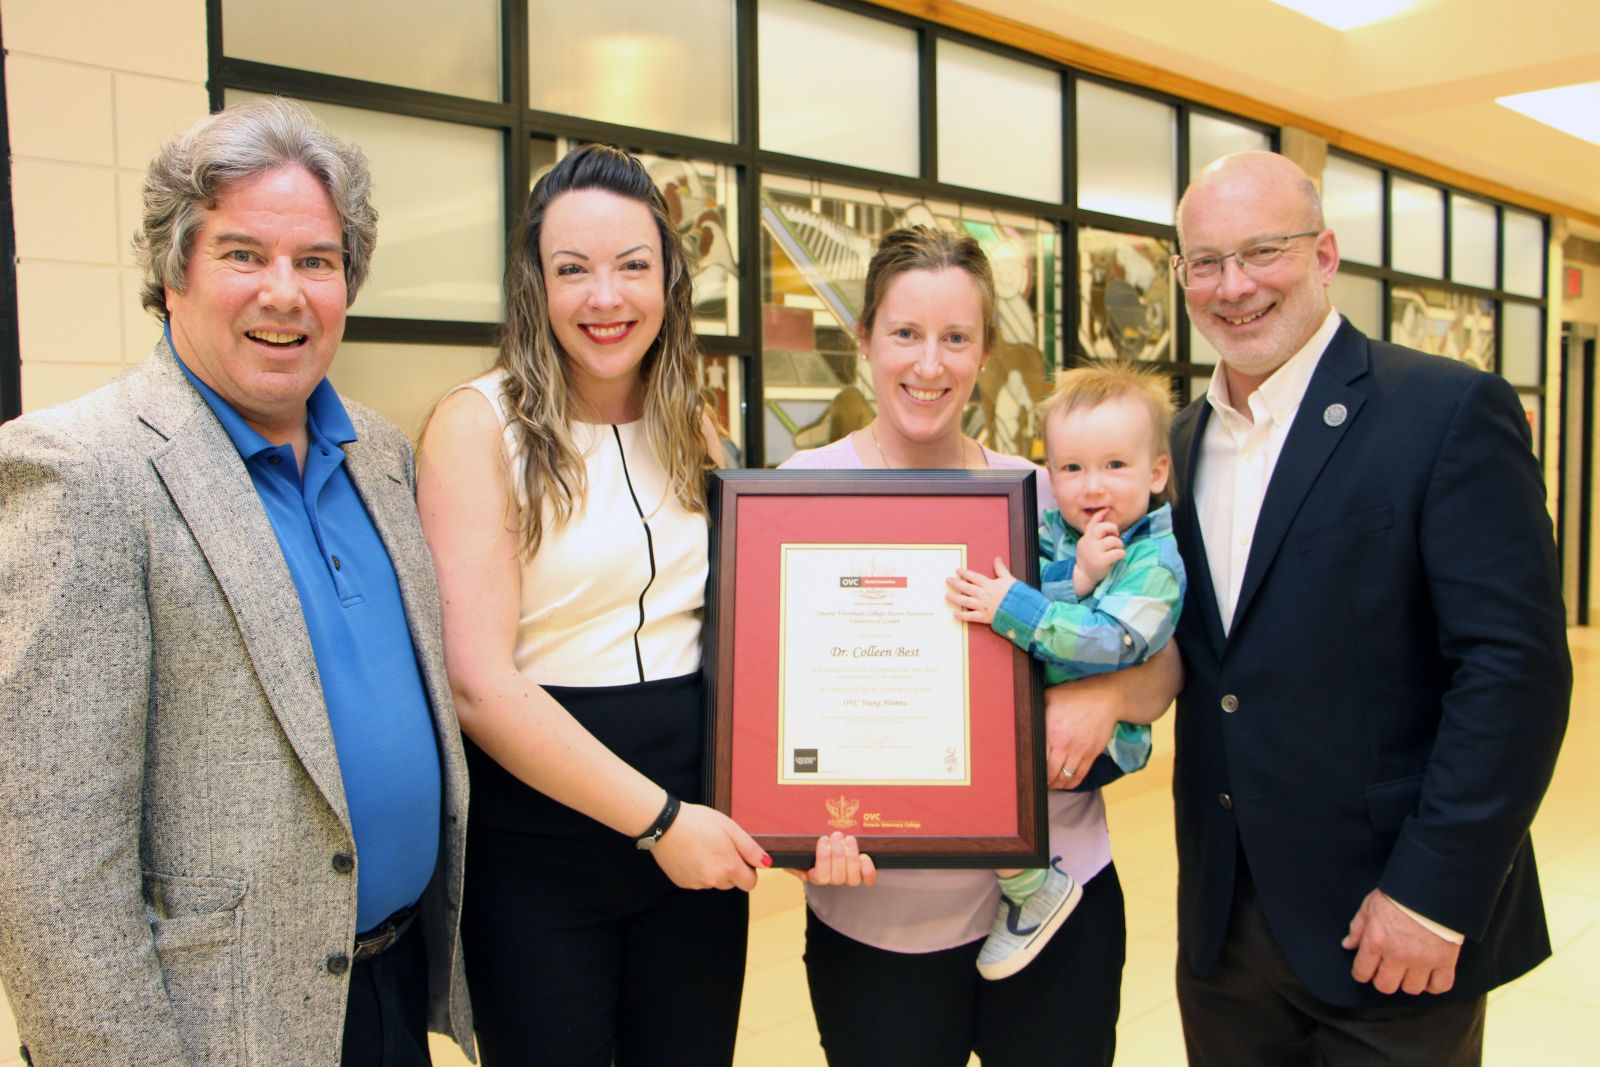 From left, OVCAA president Dr. Paul Woods; Dr. Jackie Parr, OVC DVM 2009; Dr. Colleen Best, OVCAA 2019 Young Alumnus Award winner with her son George; OVC Dean Jeffrey Wichtel.